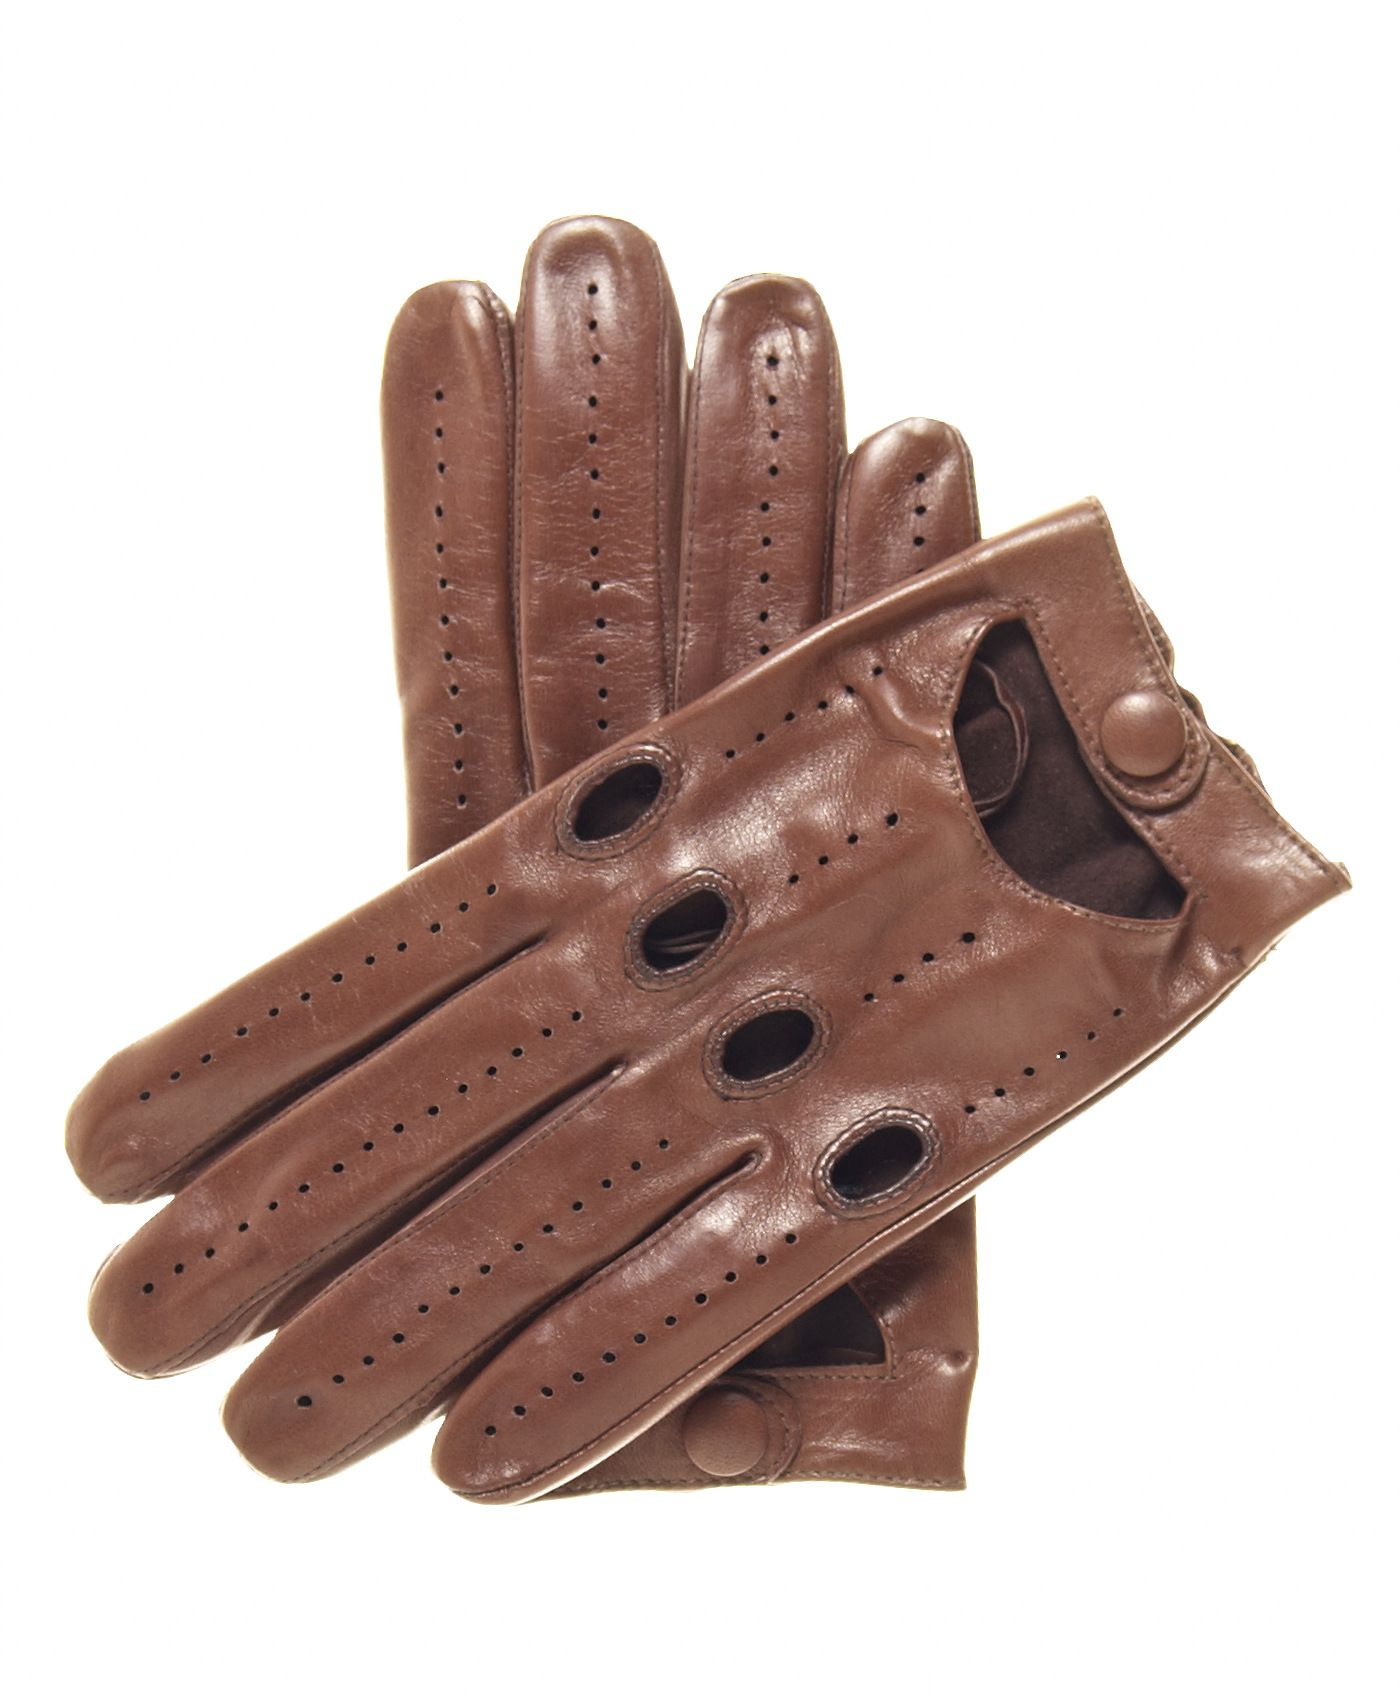 Overstock mens leather gloves - 1000 Images About Gloves On Pinterest Driving Gloves Cycling Gloves And Mens Gloves